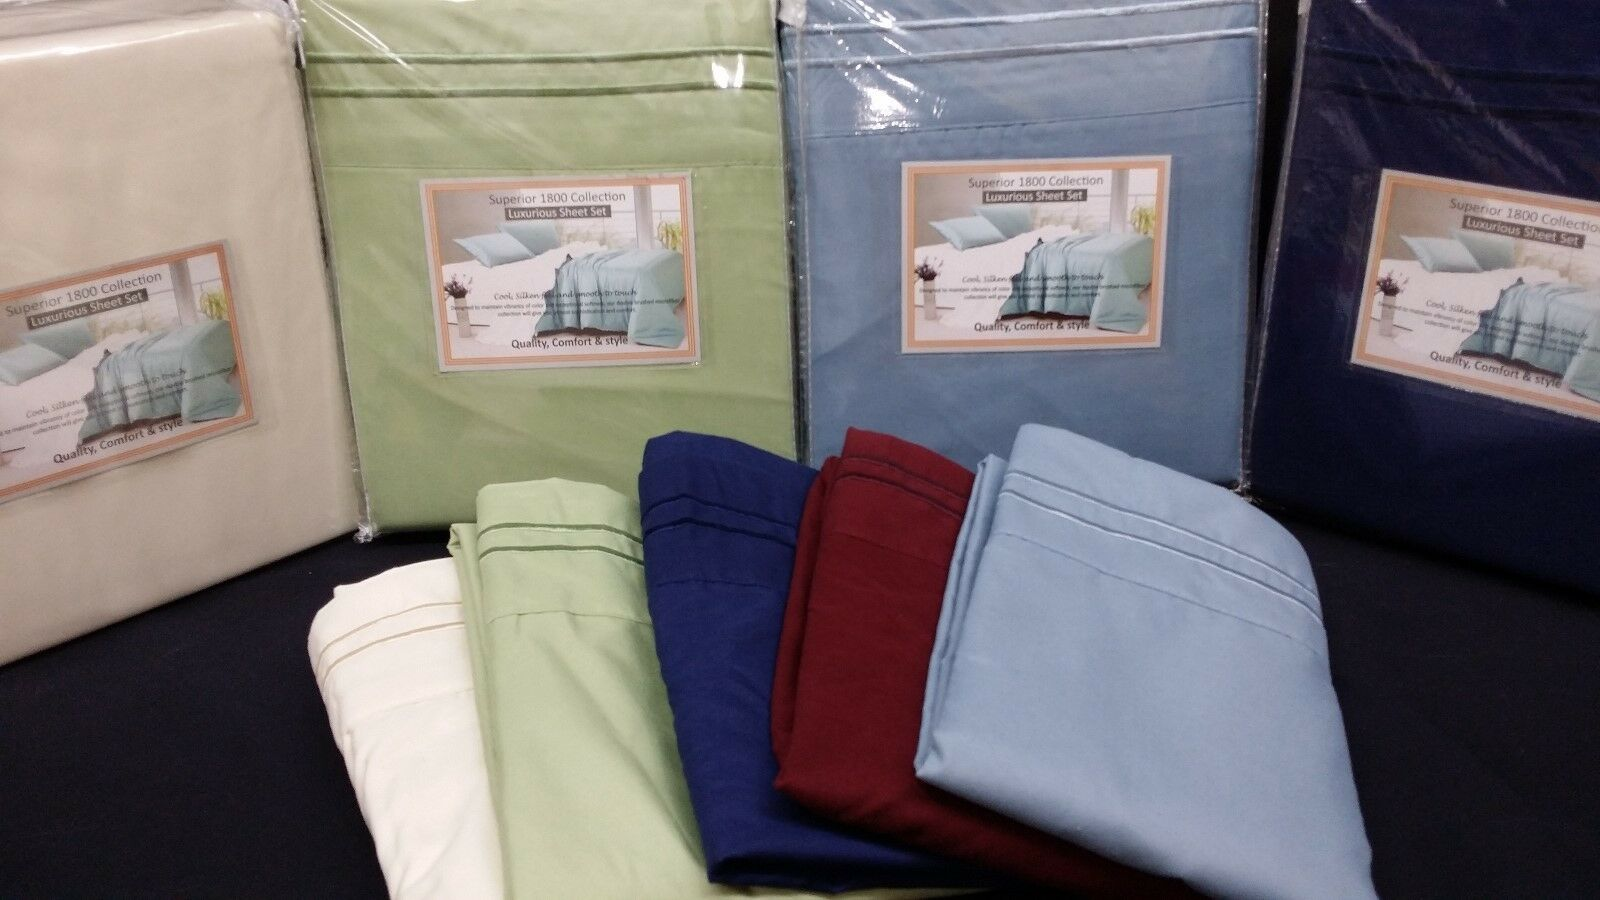 6PC WATERBED SHEET SET - Solid Double Brushed Microfiber - FREE POLE ATTACHMENT